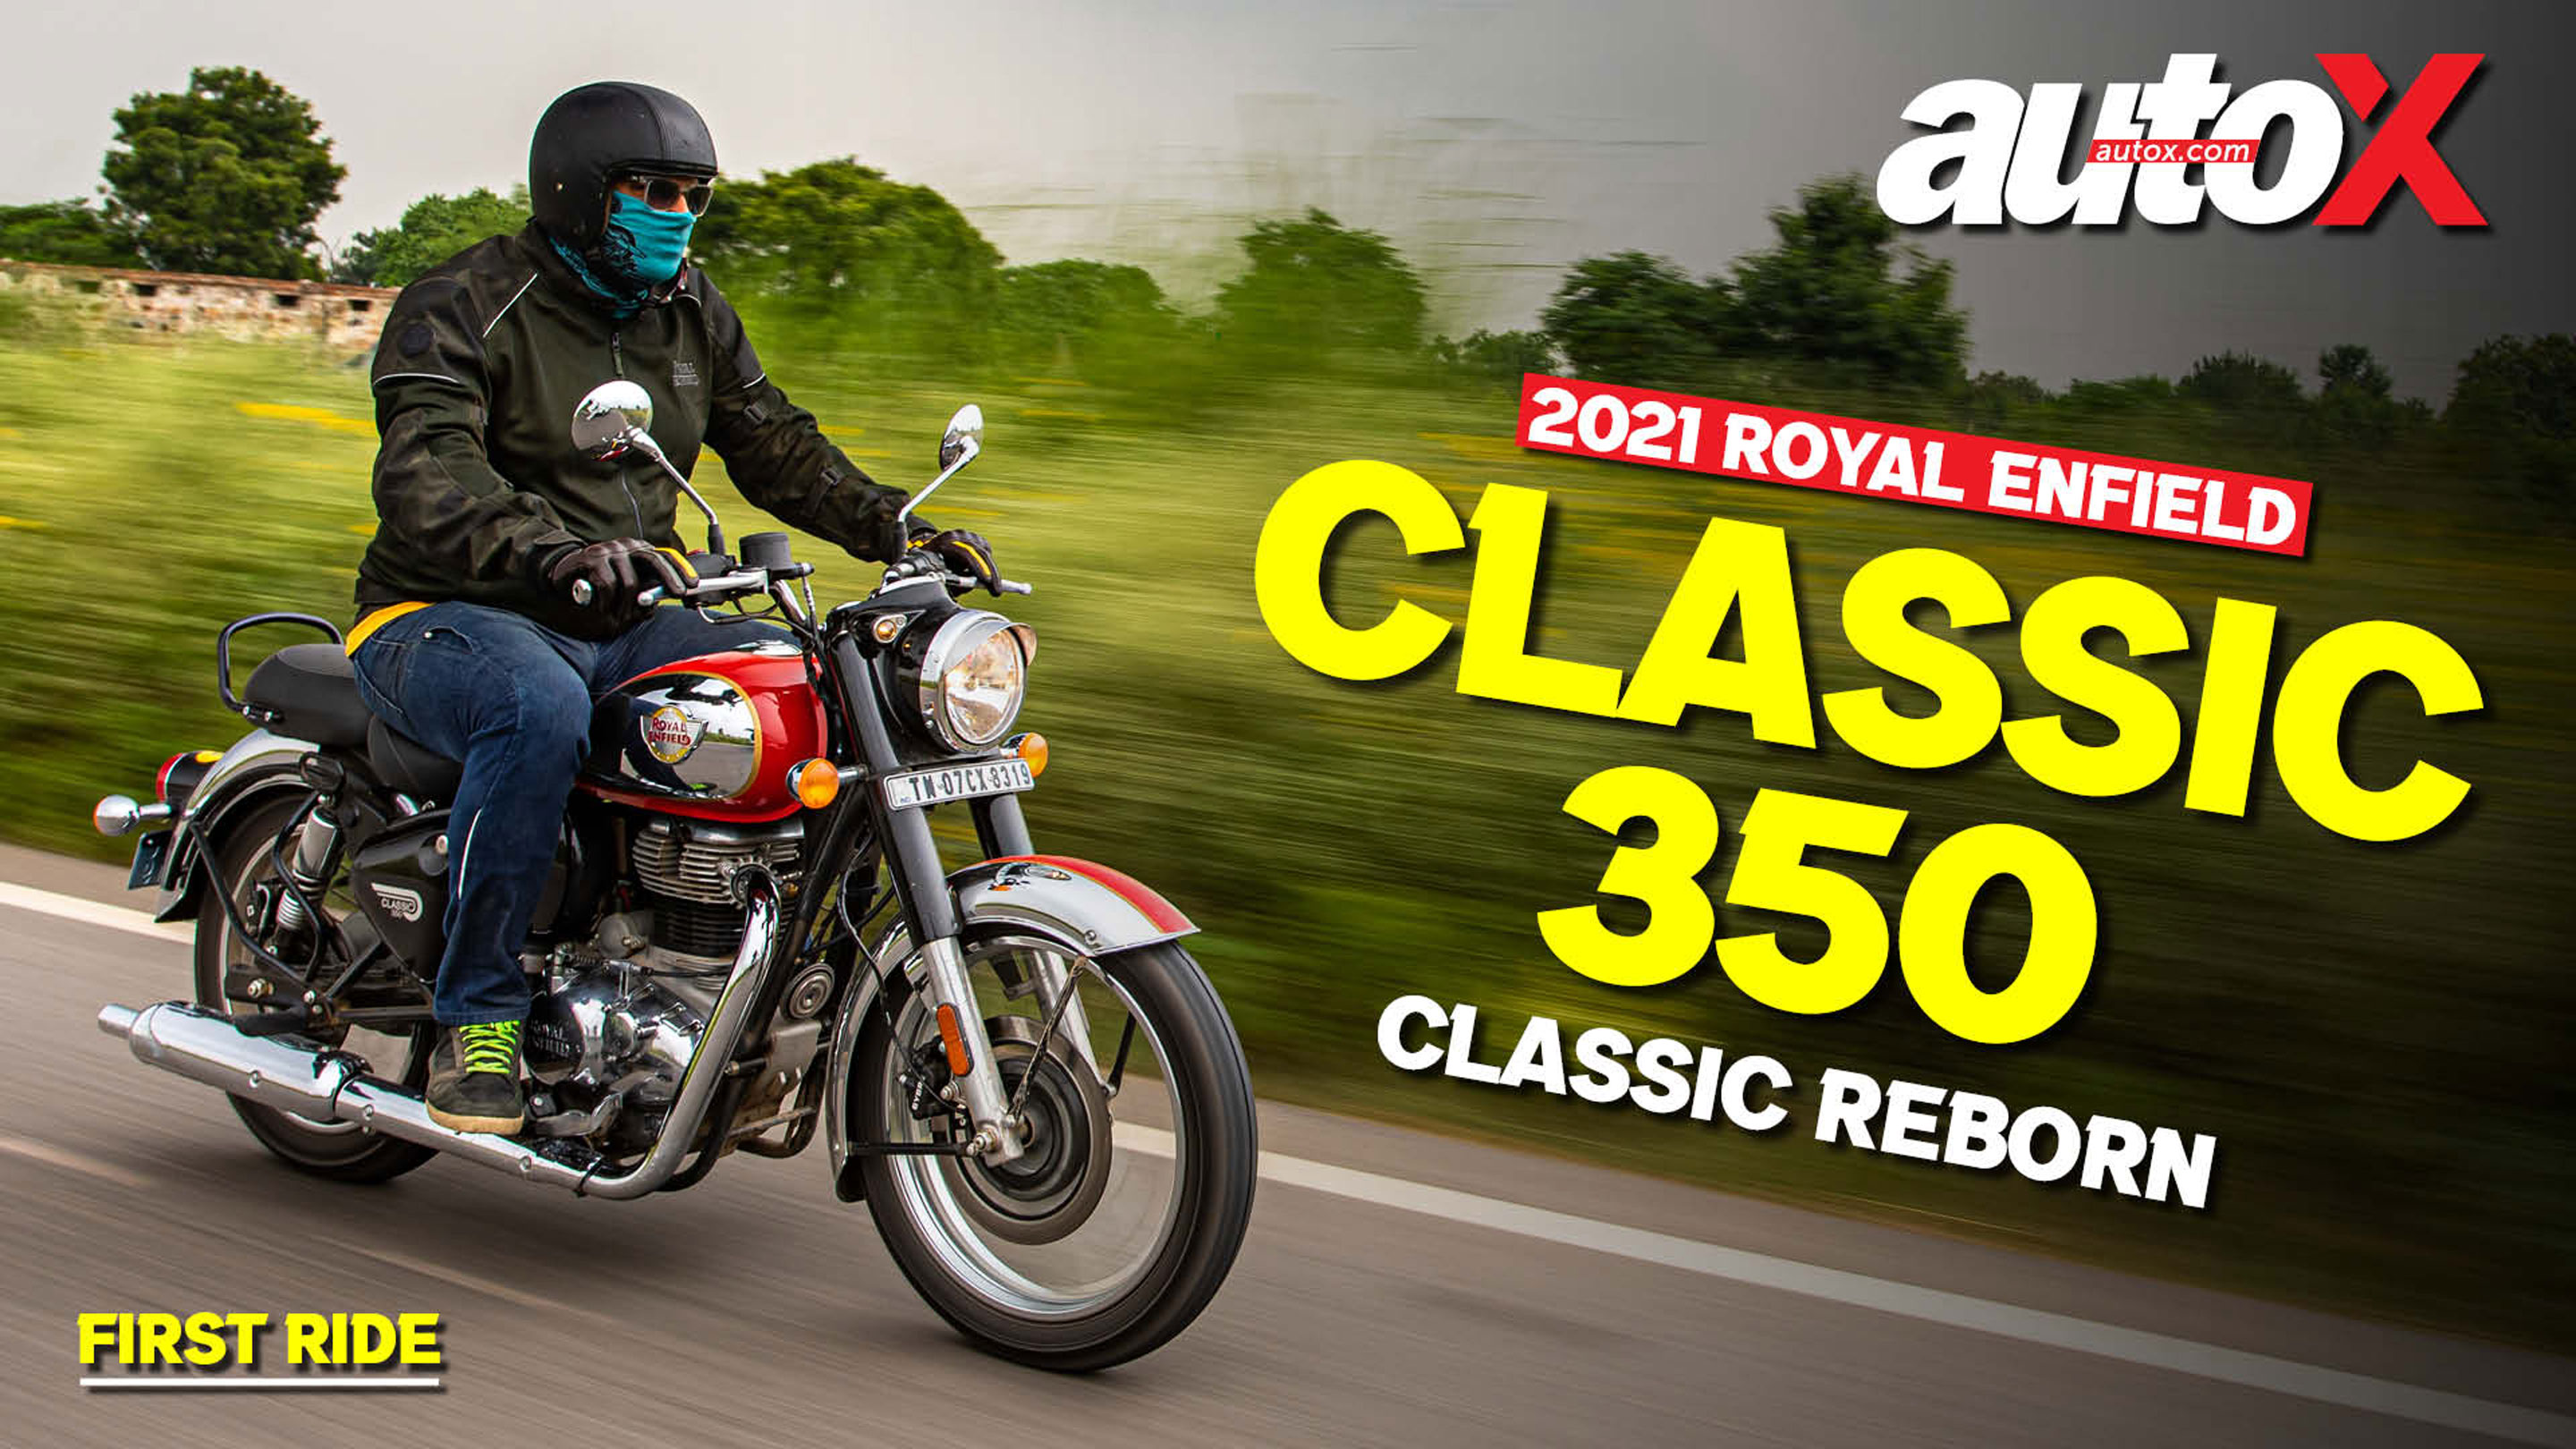 Royal Enfield Classic 350 review: Is it the best Royal Enfield? | autoX